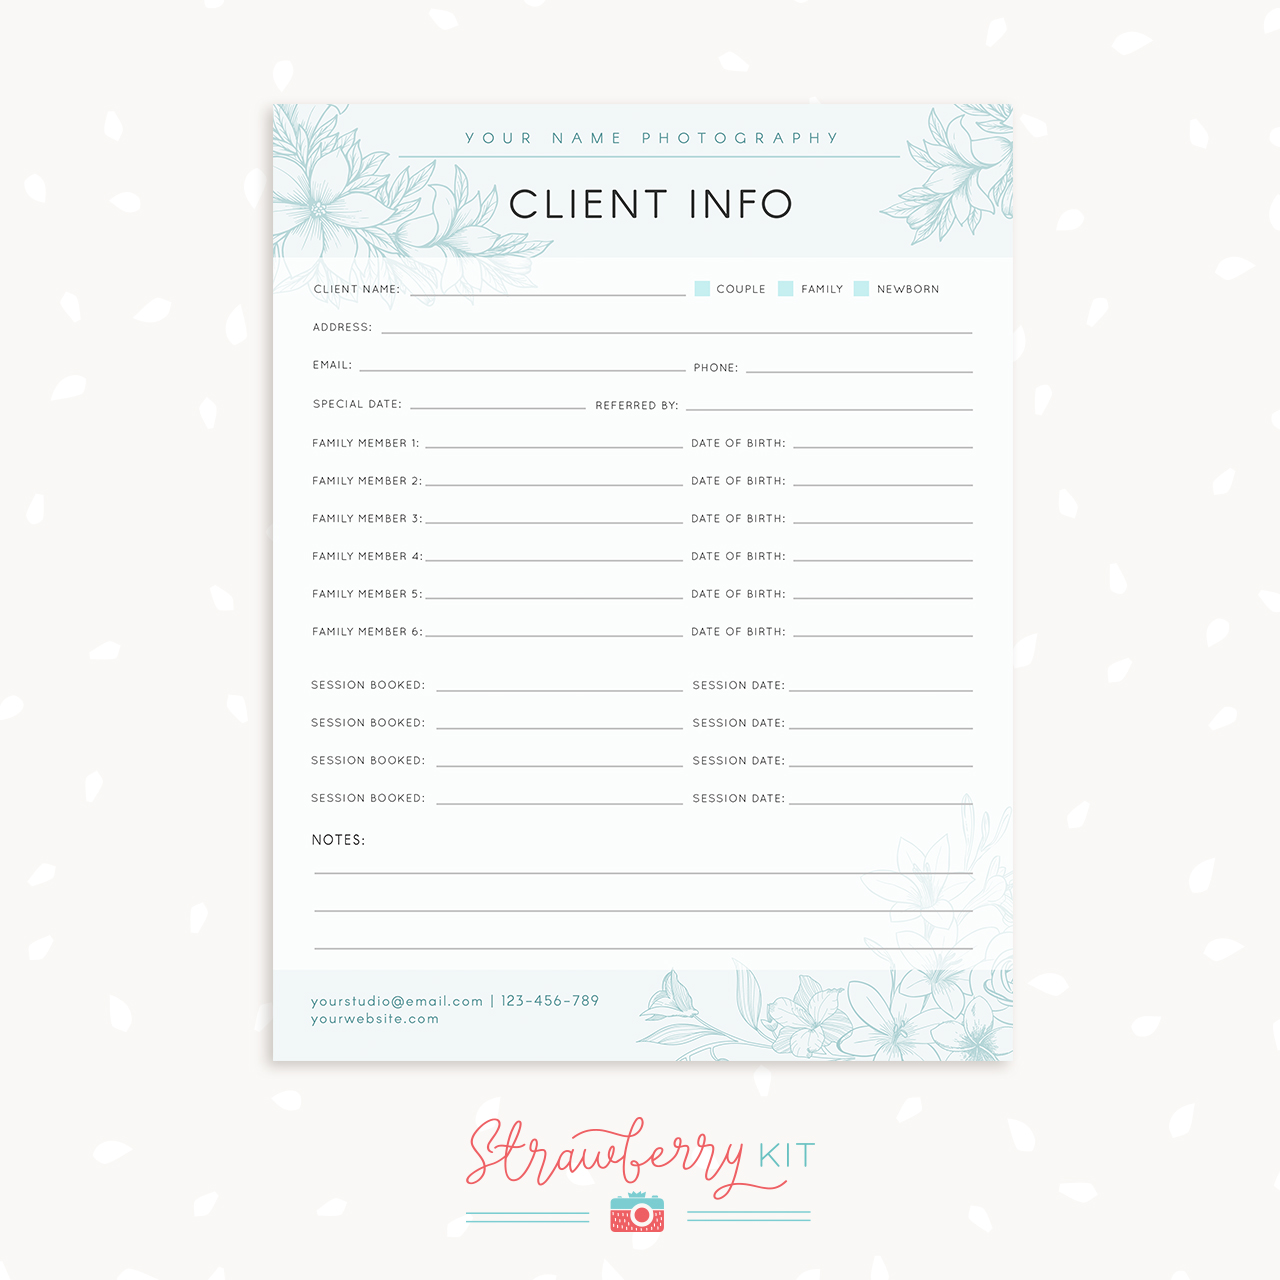 Client information template for photographers strawberry kit for Birth photography contract template